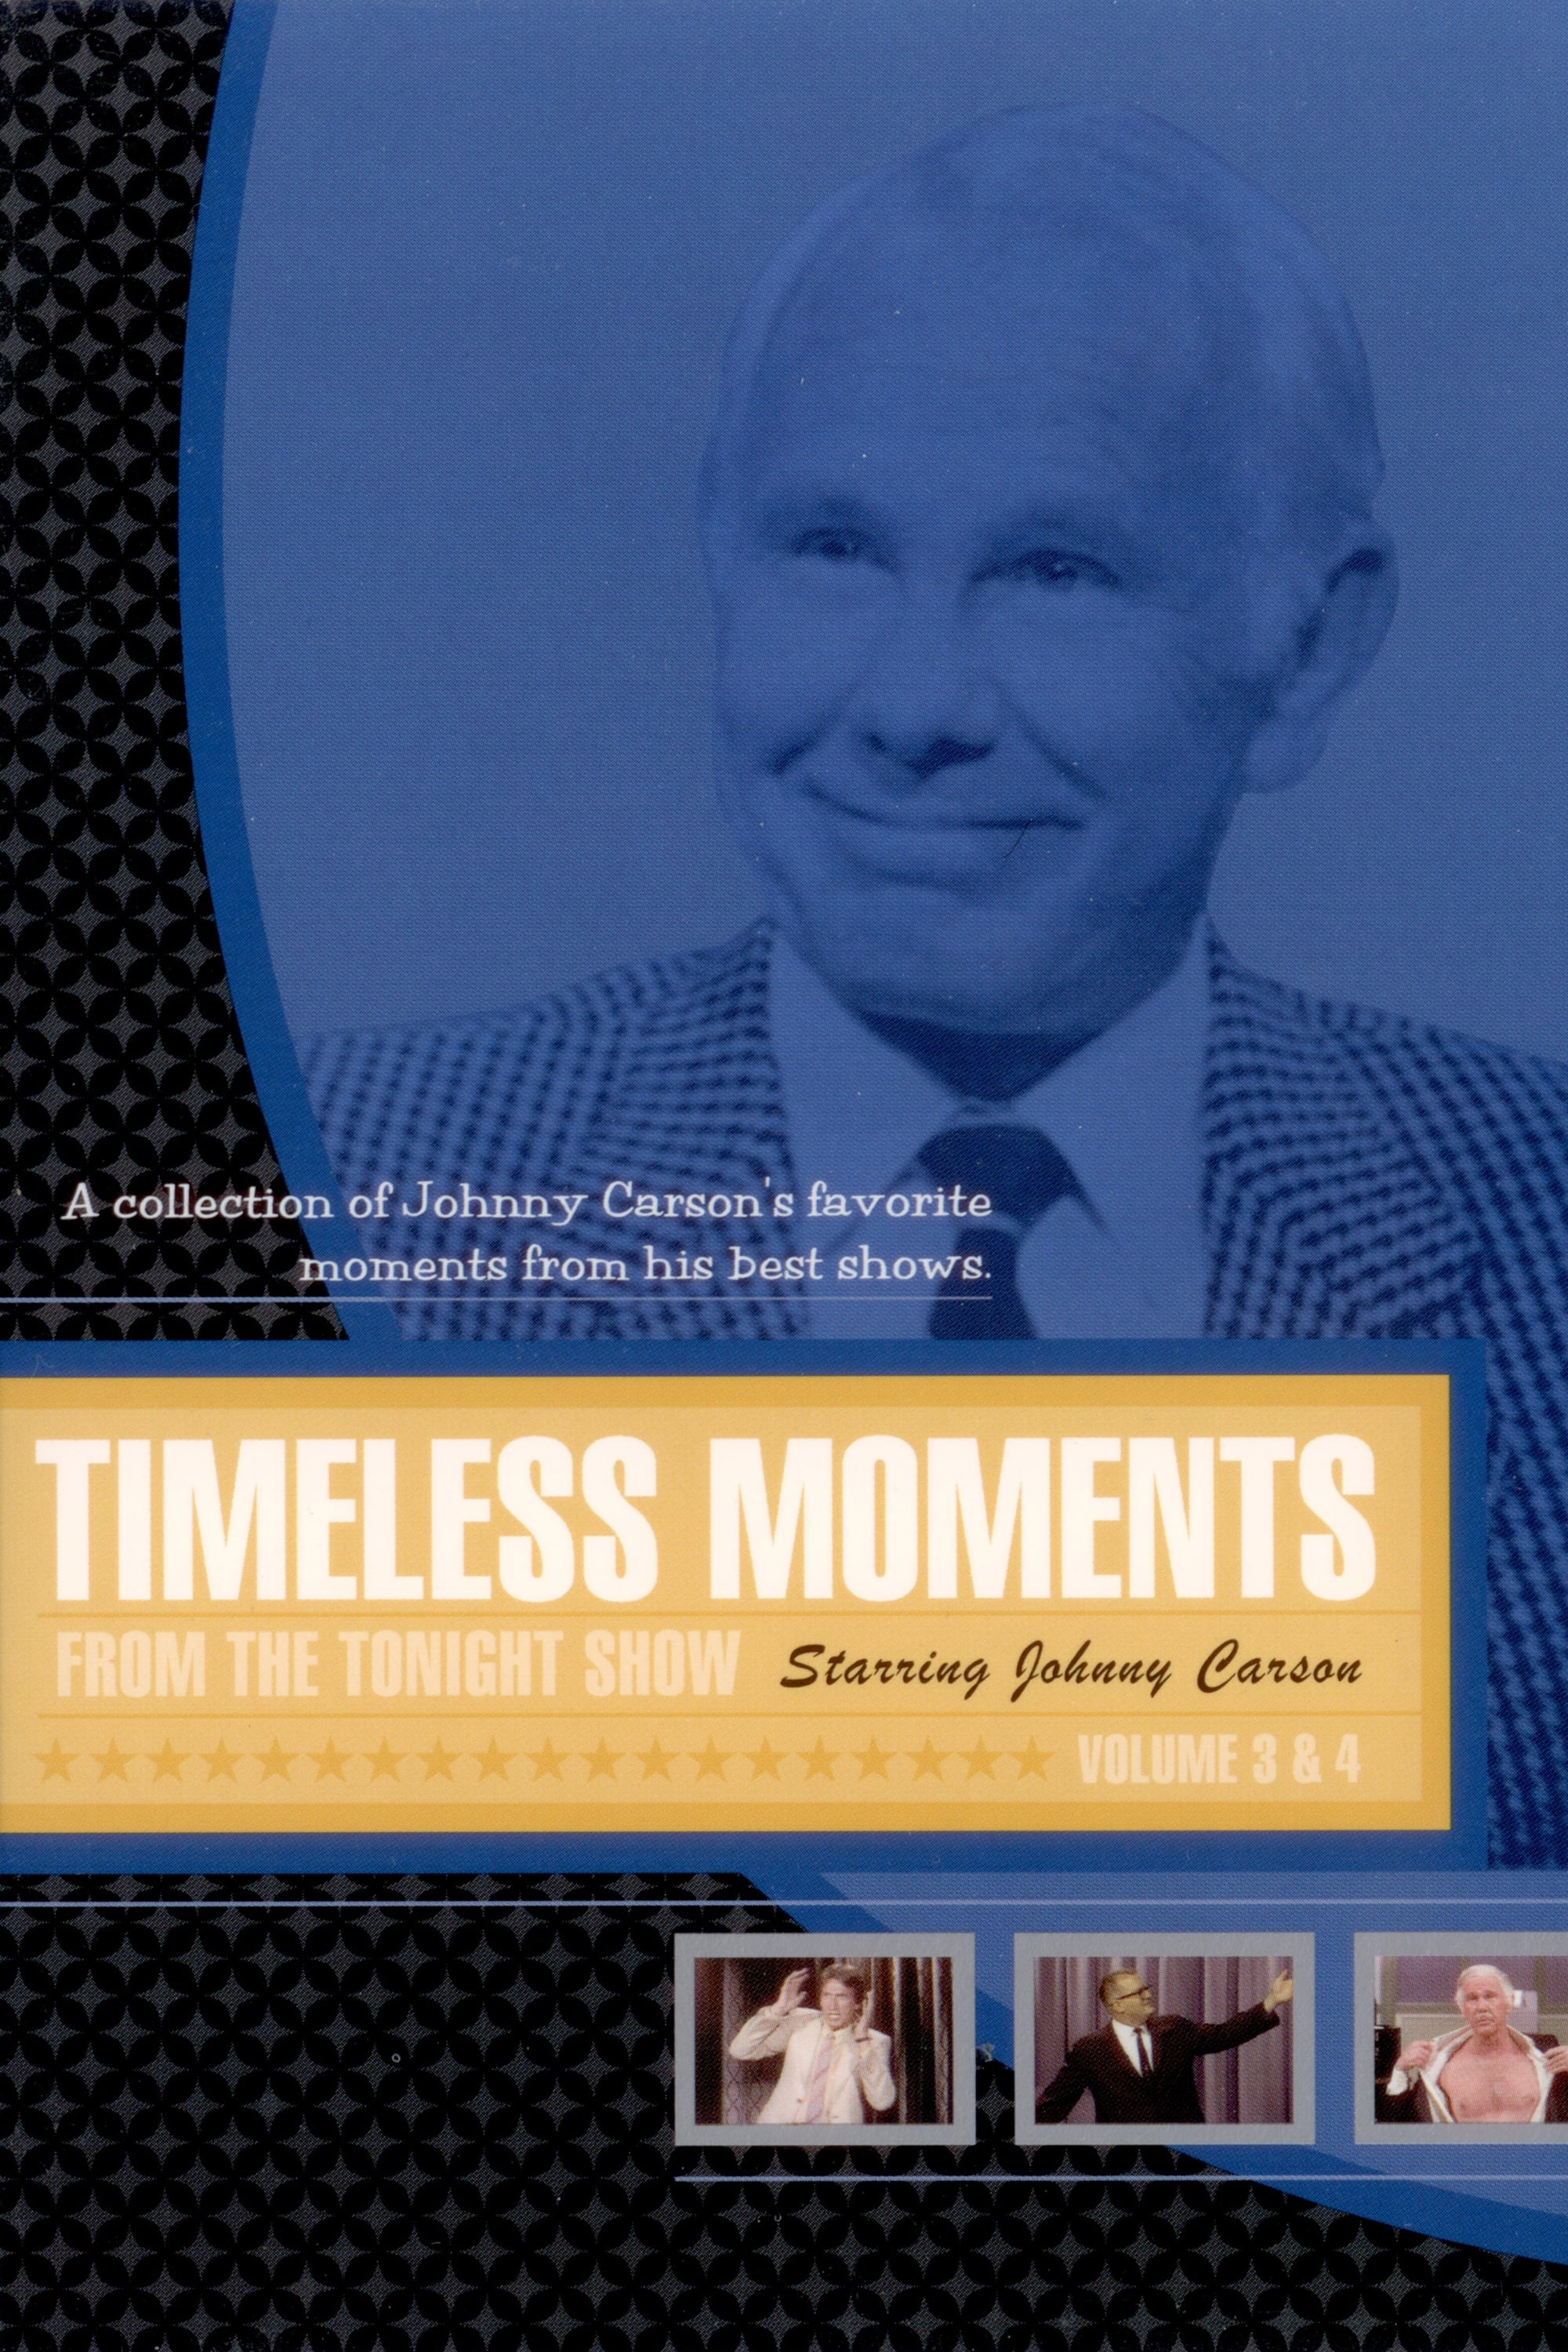 Timeless Moments from the Tonight Show Starring Johnny Carson - Volume 3 & 4 (2002)